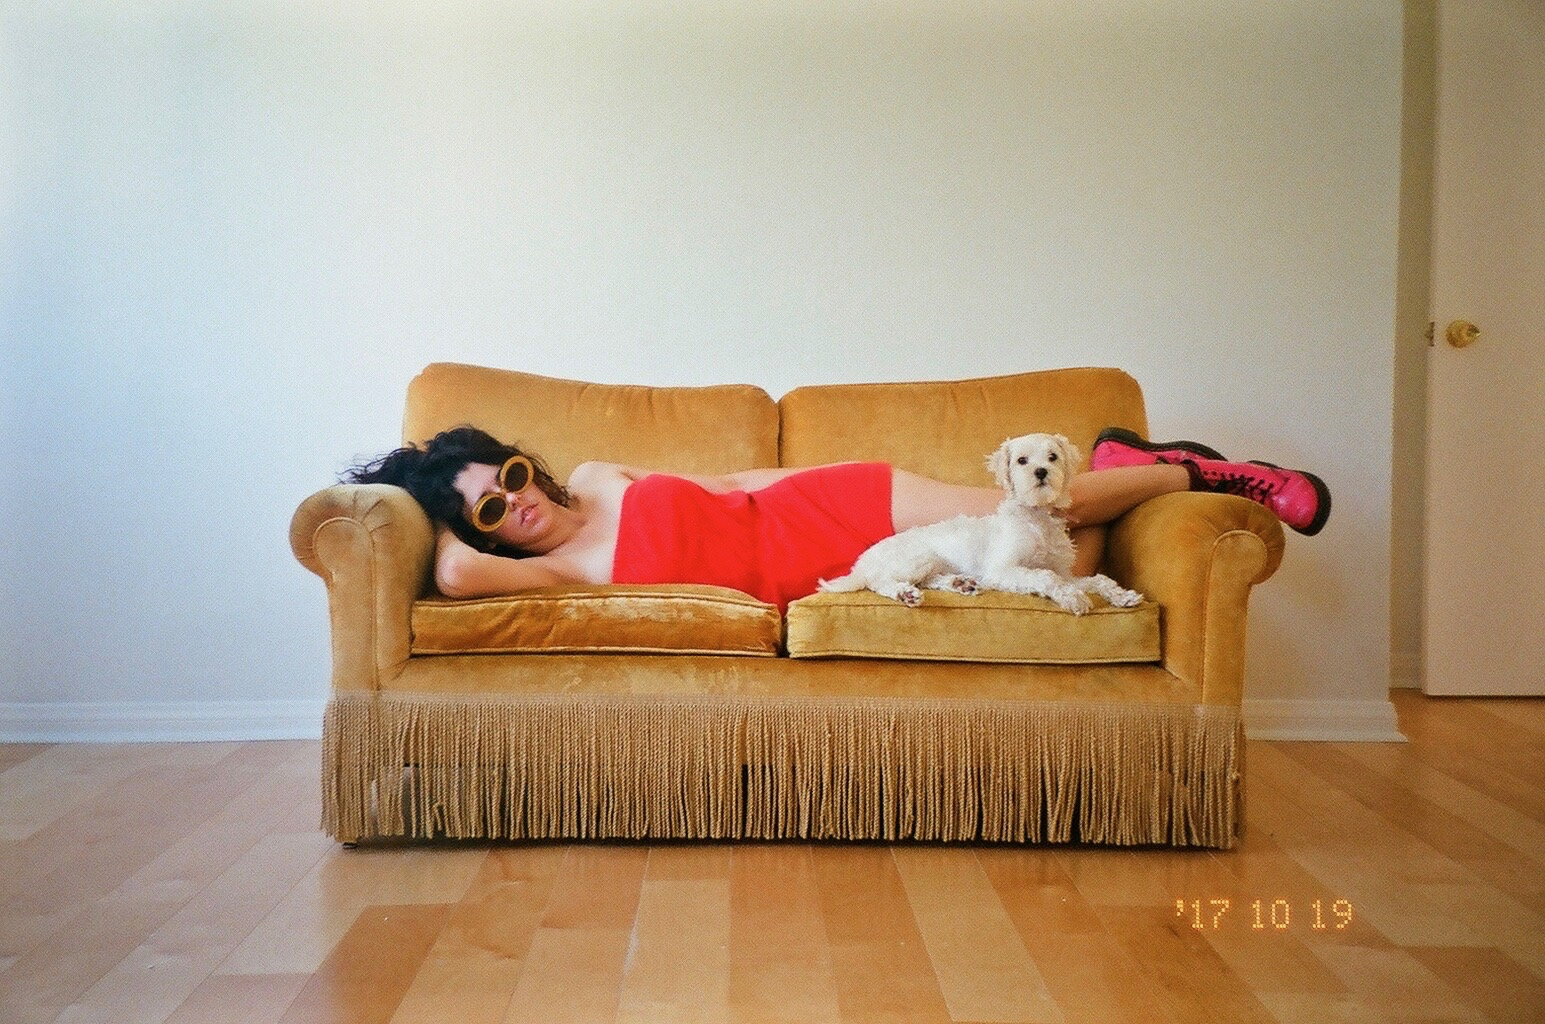 Mary Neely and dog